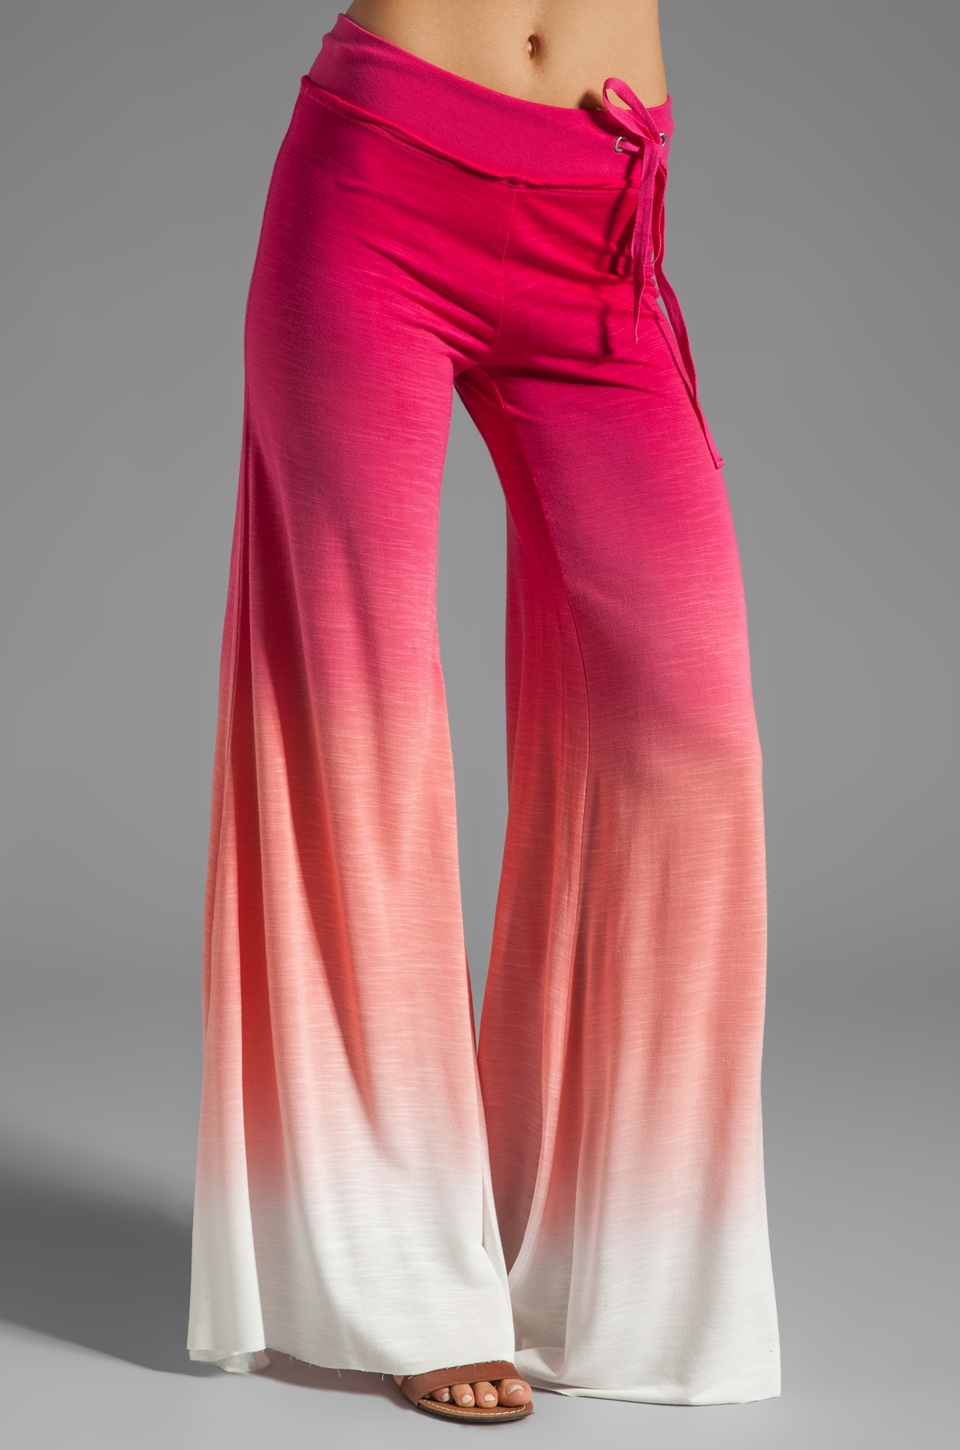 Young, Fabulous & Broke Wide Leg Pant in Fuchsia Sunset Ombre